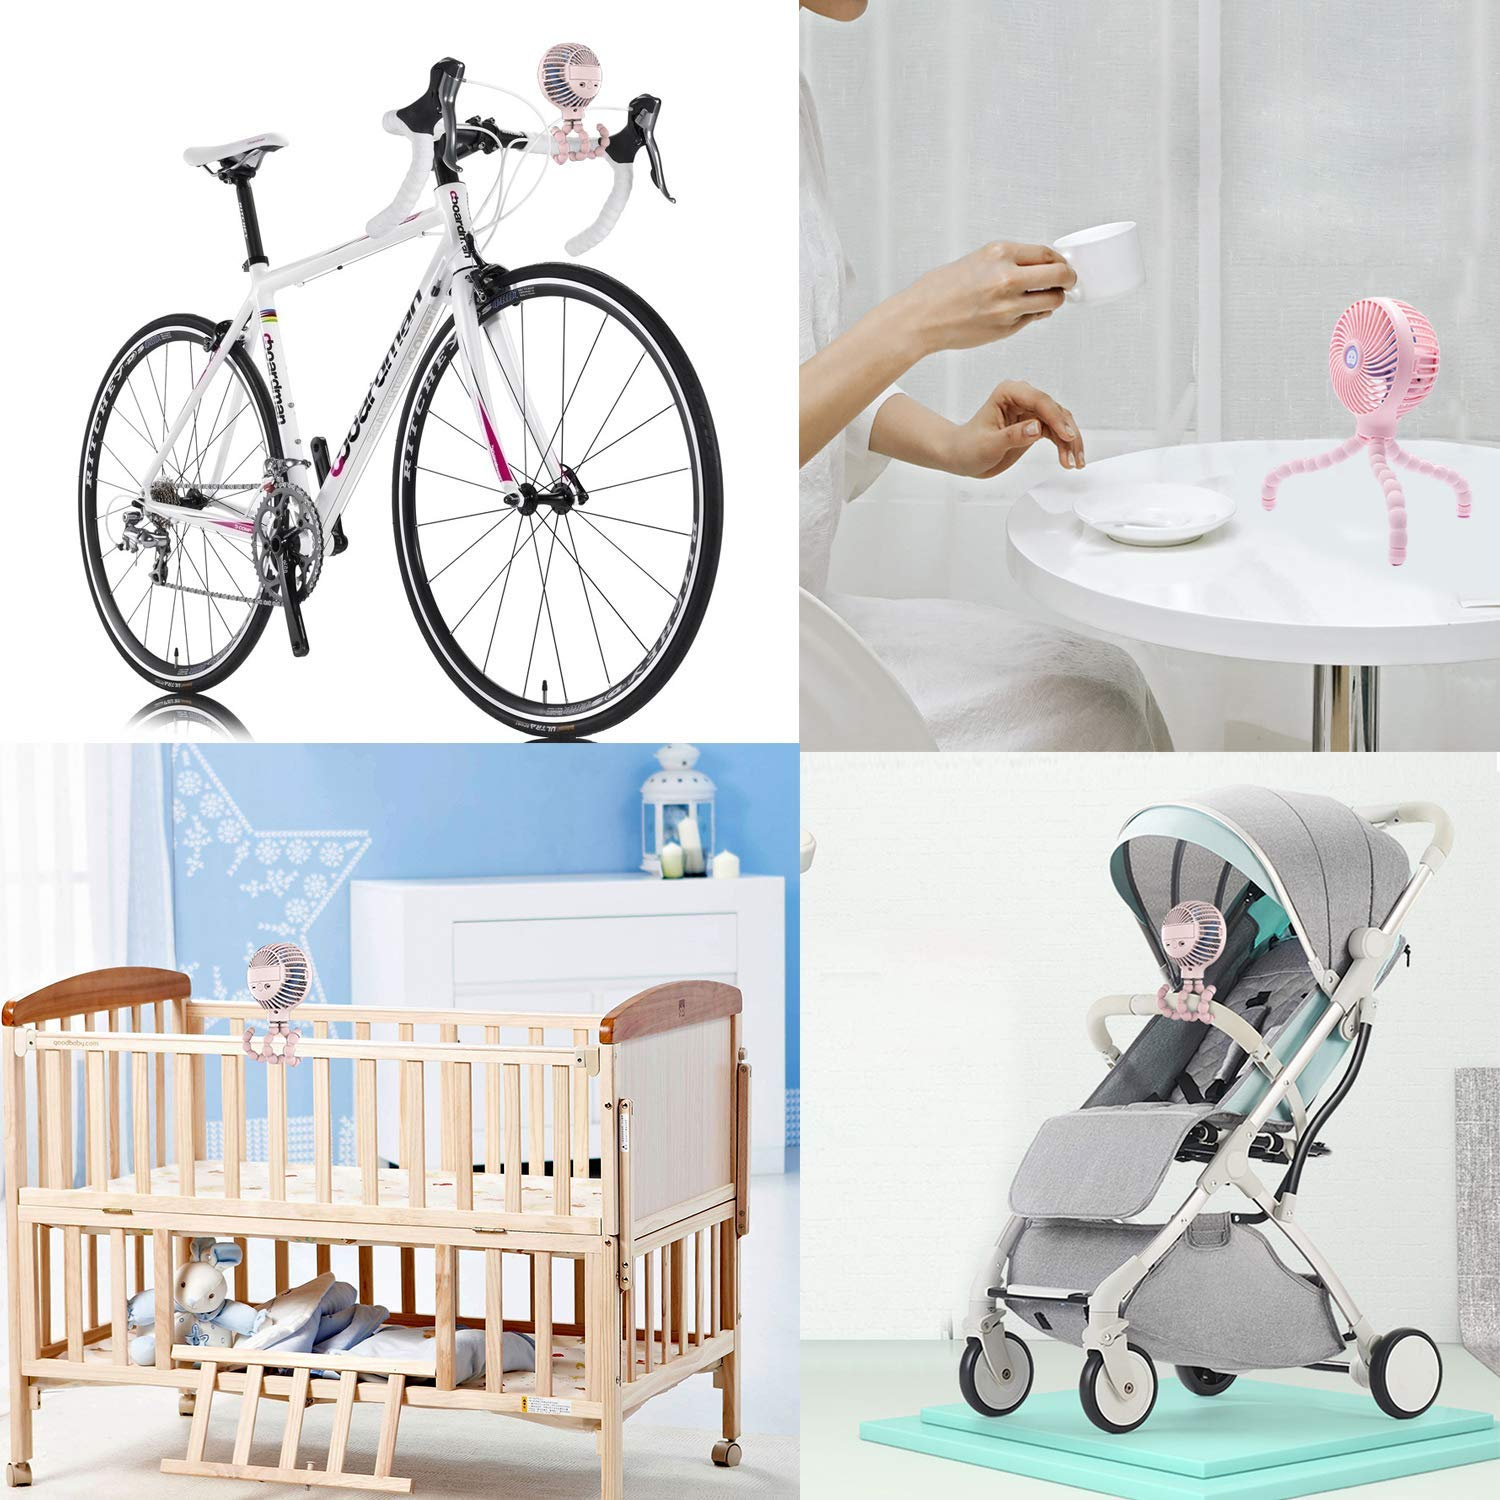 Personal Stroller Fan, Vatemax Portable Baby Fan, Handheld 3 Speeds Rechargeable USB Baby Buggy Fan with Flexible Tripod for Office/Room/Camping/Traveling/BBQ/Gym